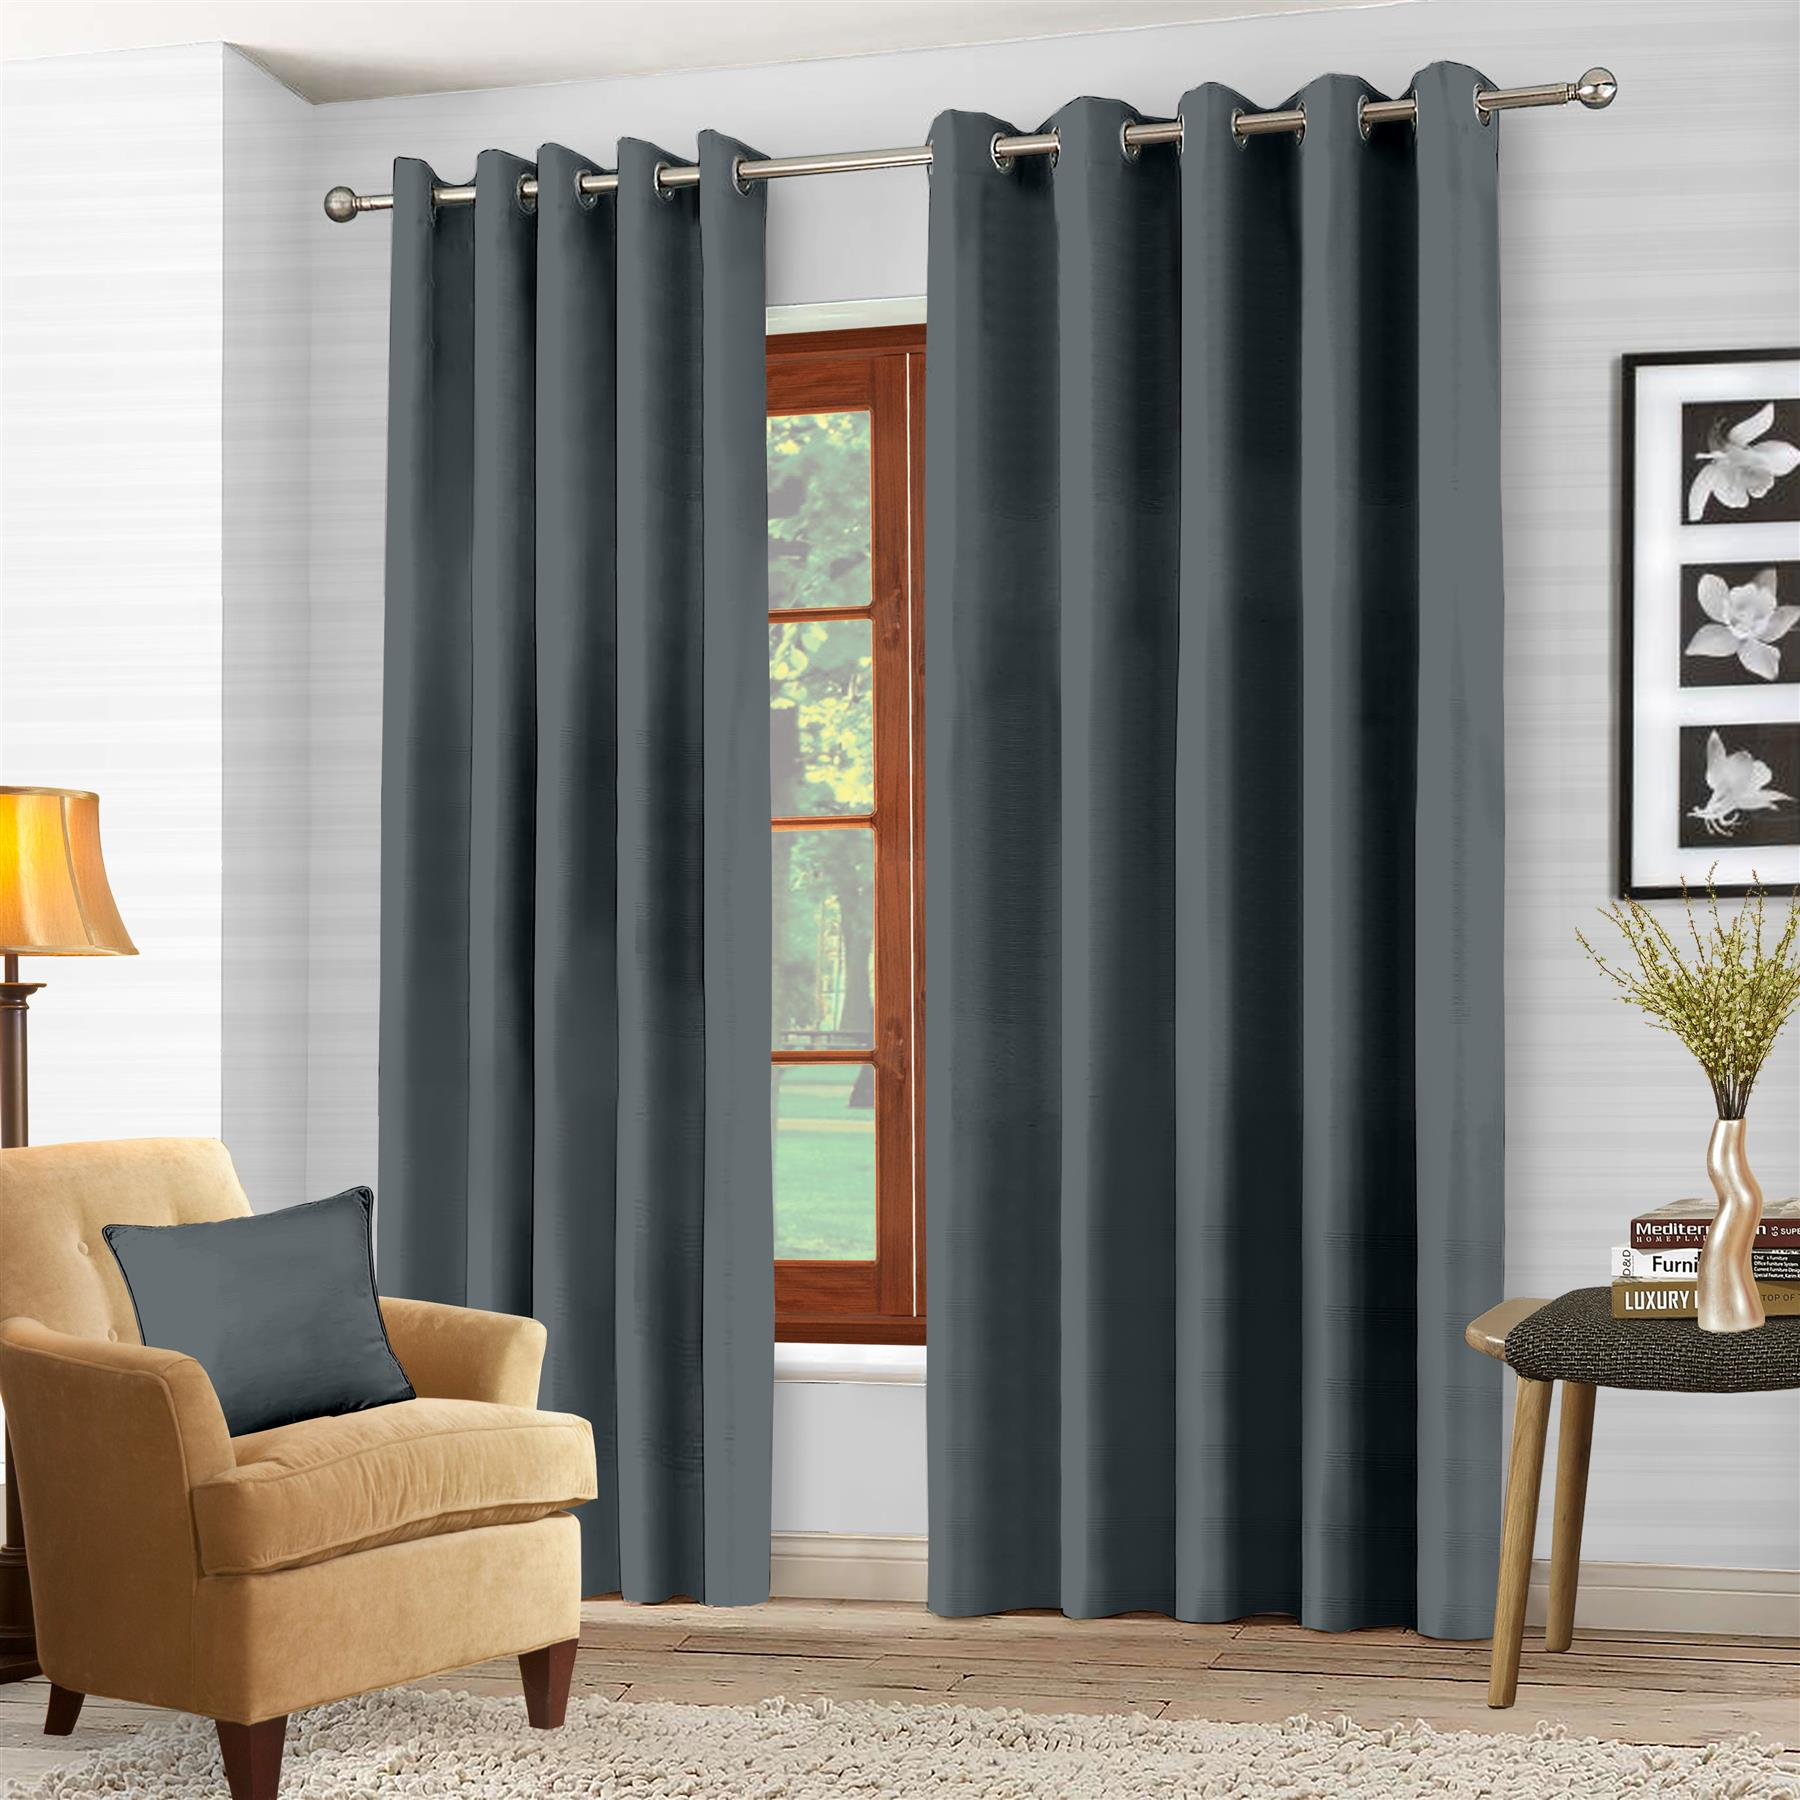 Luxury-Thermal-Blackout-Eyelet-Ring-Top-Curtains-Pair-with-tie-backs thumbnail 15